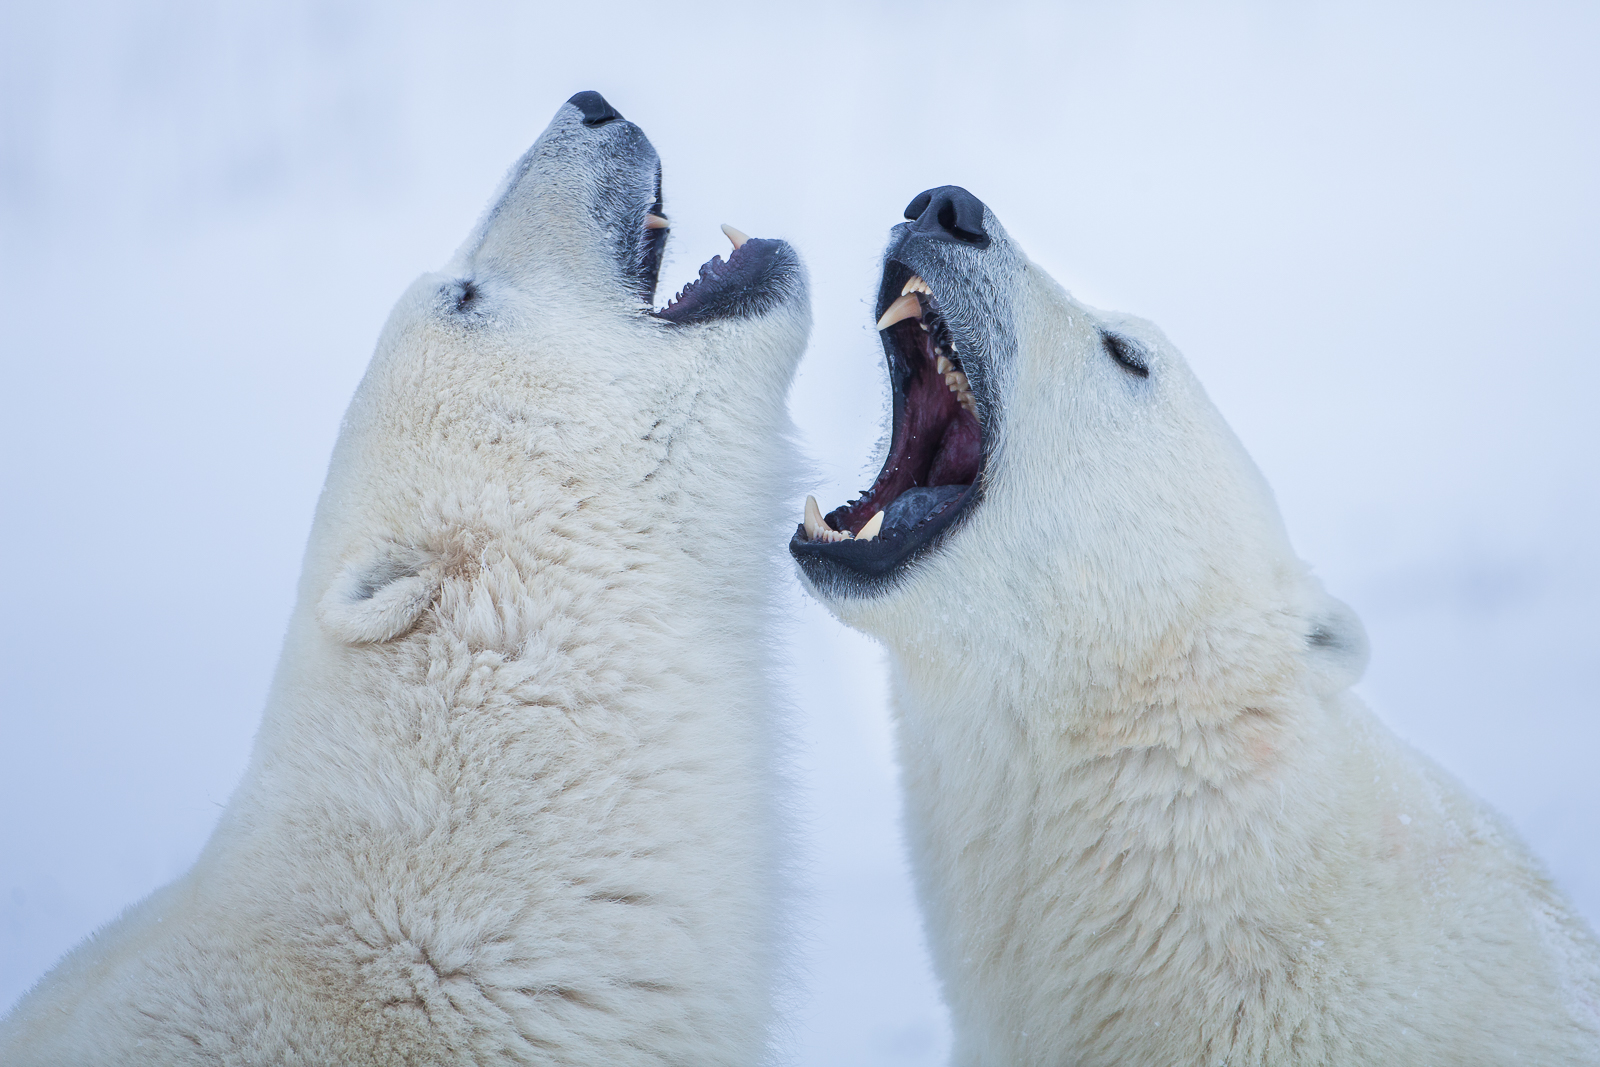 Polar Singsong,Fighting,Polar bear,Sparring,Wildlife,Winter,Manitoba, Canada,Ice, photo